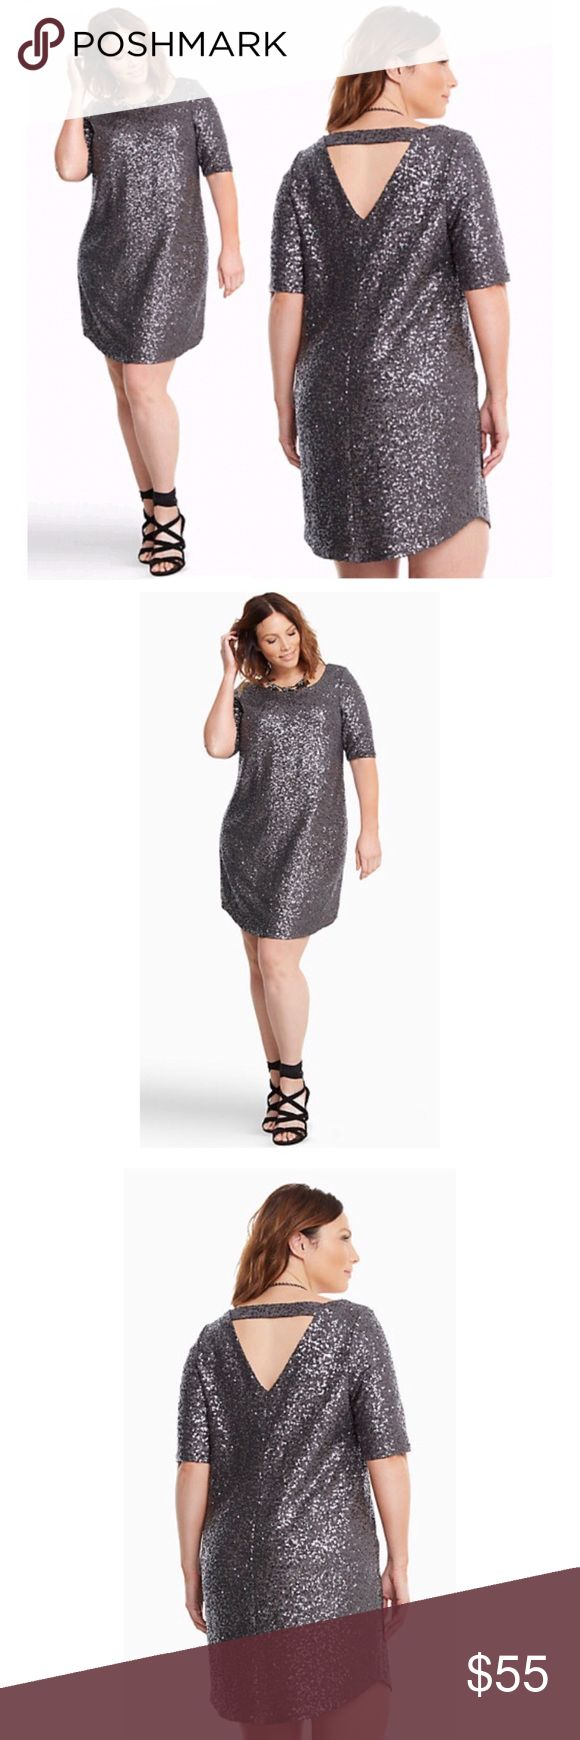 Gorgeous Glittery Grey Sequin Shift Shift Dress NWT Gorgeous Sequin Shift Shift Dress, Plus Size 2. Raise a glass because the party starts and ends with this shift dress. The scoop neck mini style literally has all the glitter with grey sequins lighting up the look from dusk till dawn, The throw-and-go style turns up the sex appeal with a strap cutout back. Fully lined (aka no scratchy sequins). Polyester/Spandex torrid Dresses